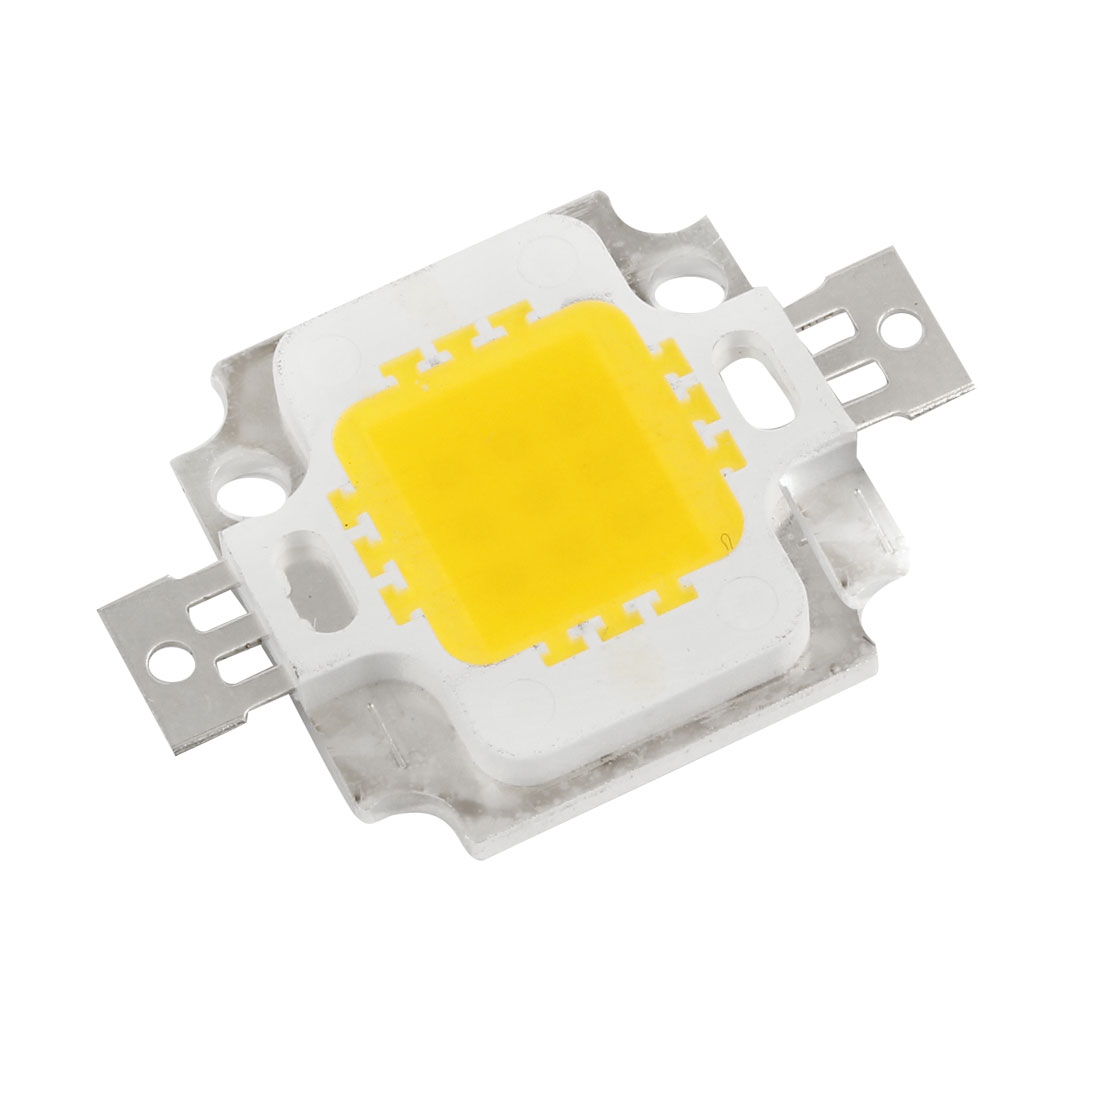 10-12V 10W Warm White Light High Power Lamp Bulb COB Spot LED SMD Chip